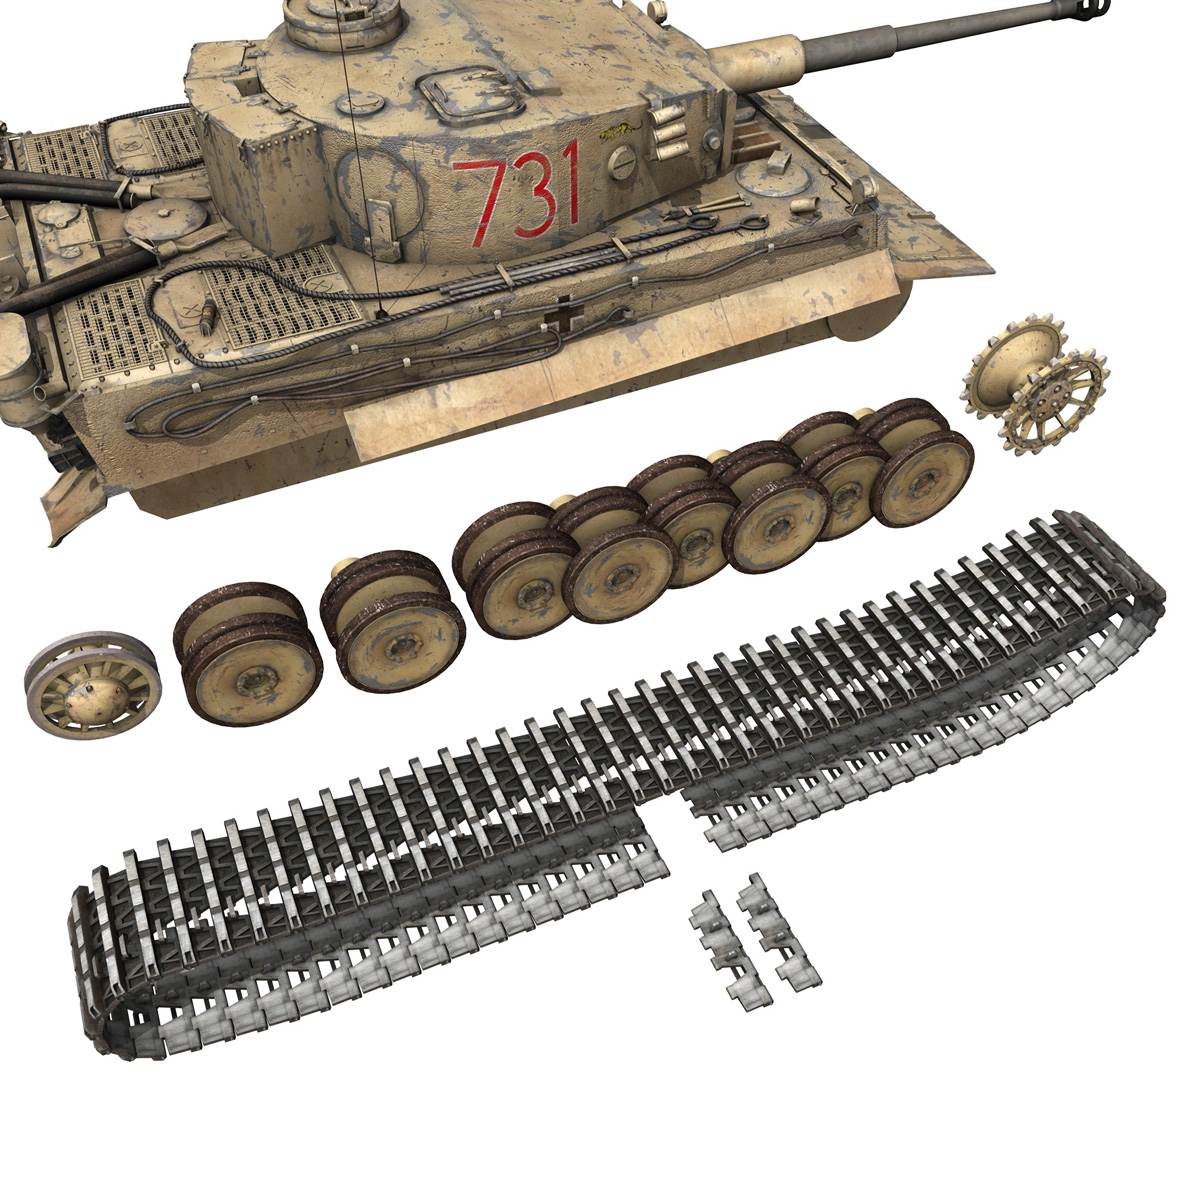 panzer vi – tiger – 731 – early production 3d model 3ds lwo lw lws obj c4d fbx 265438